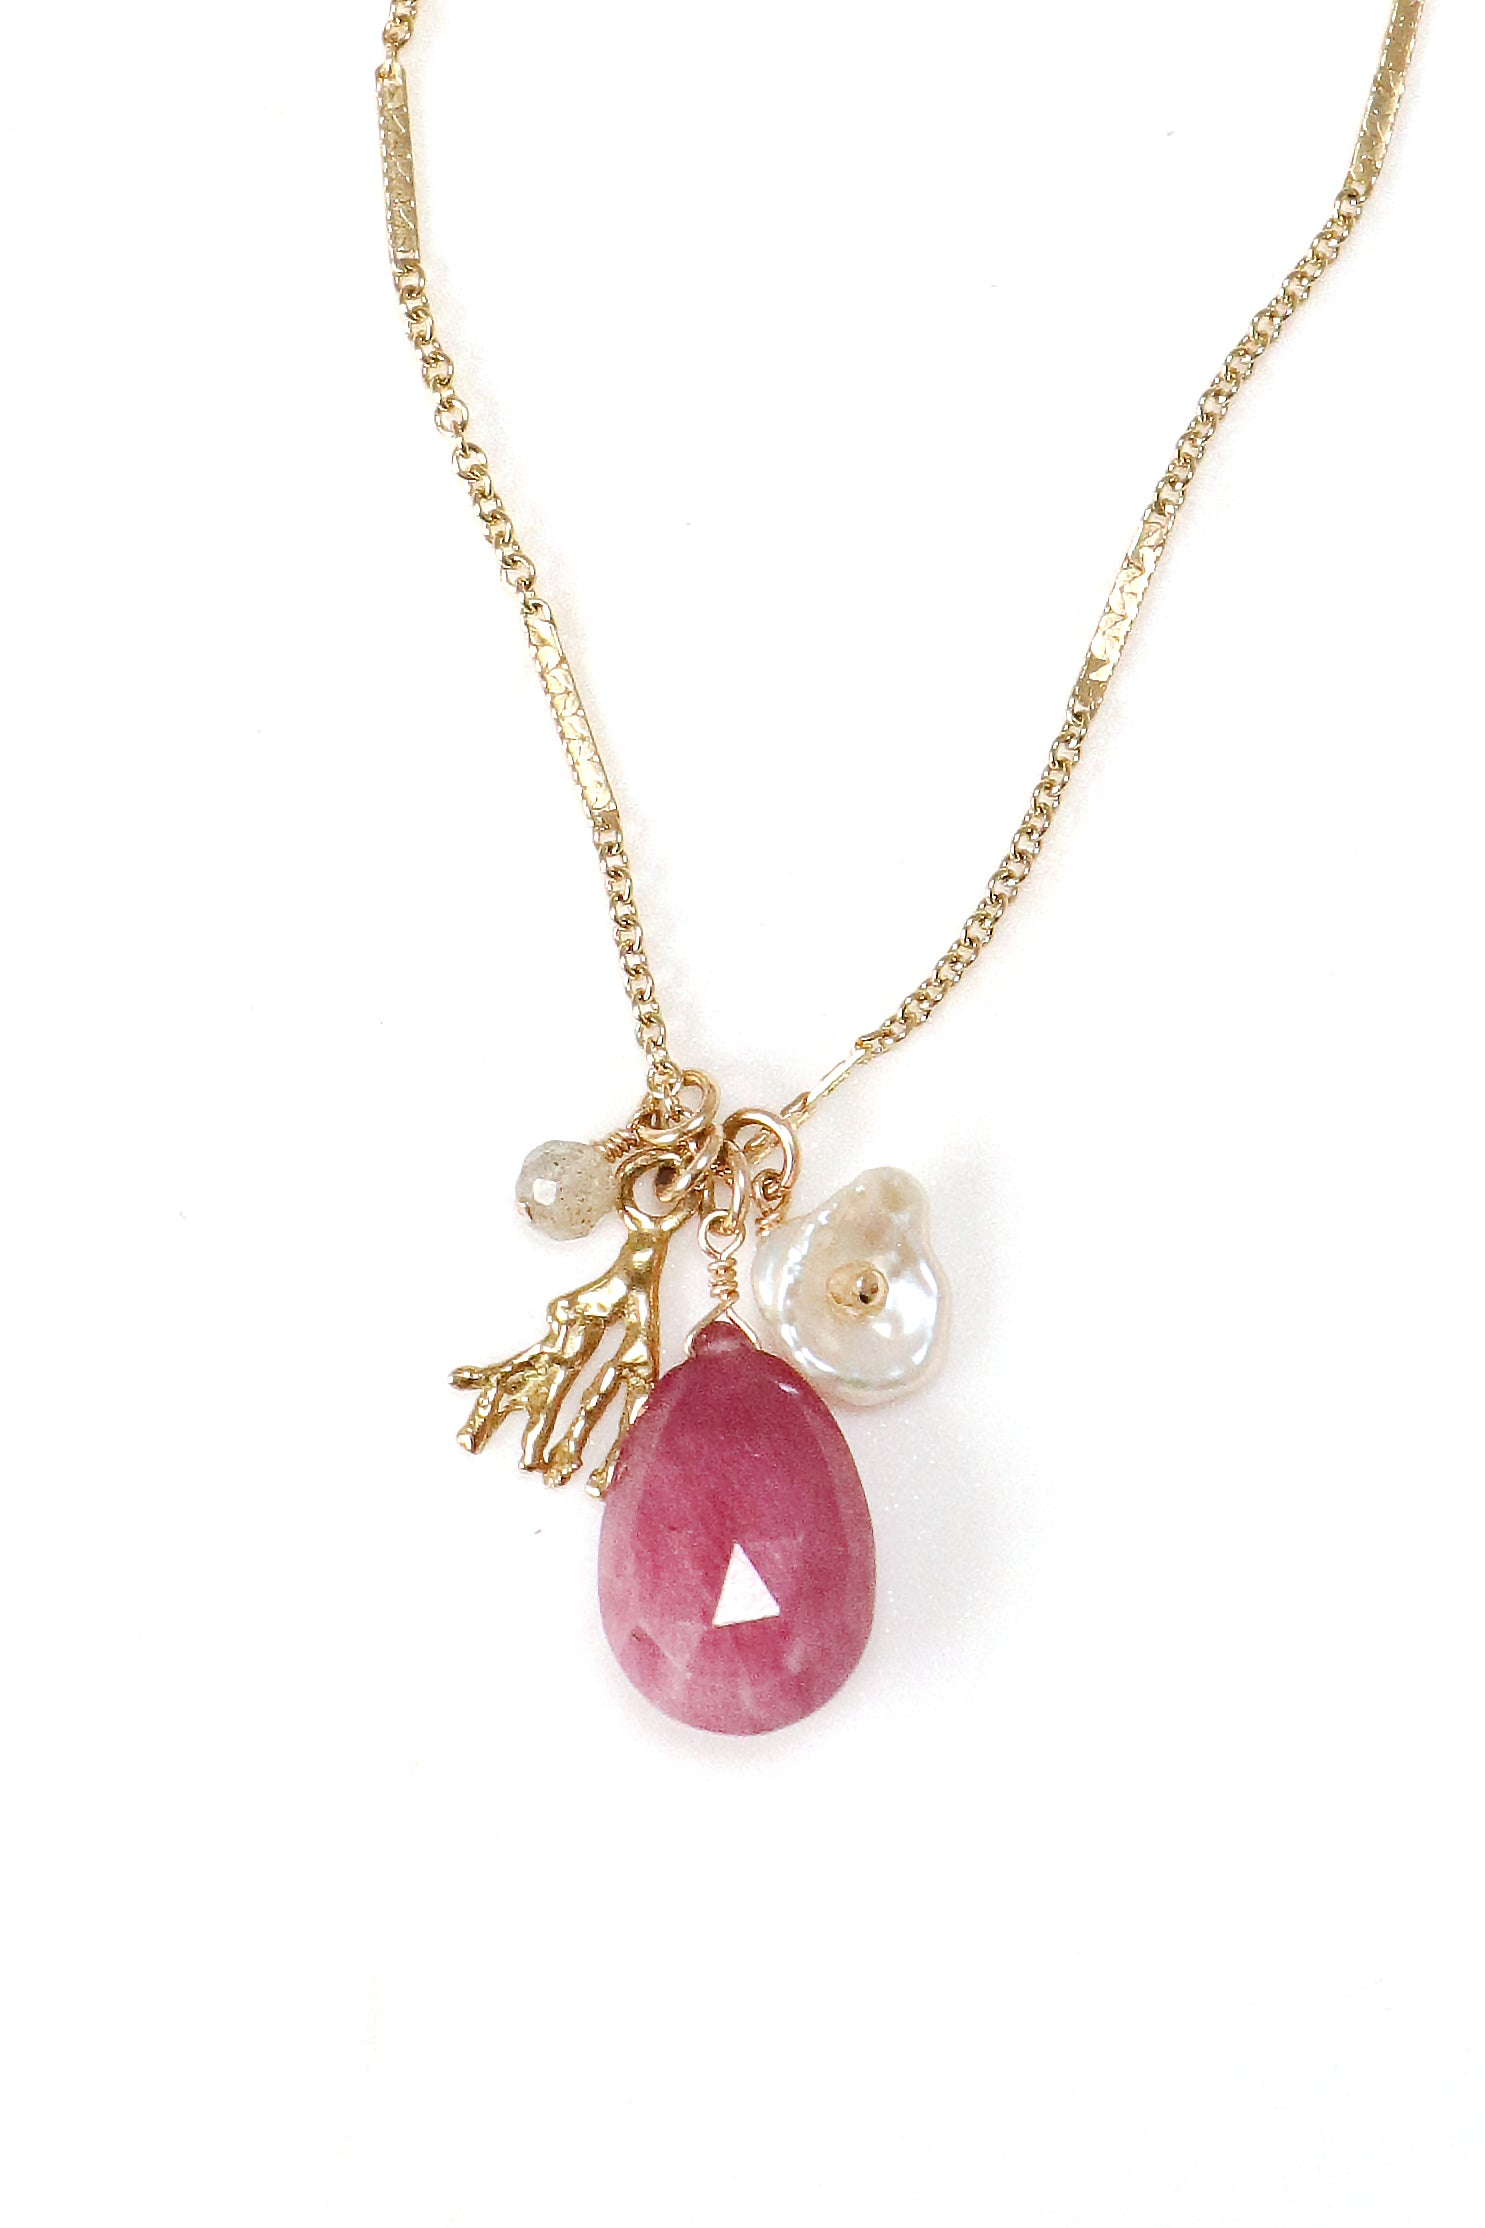 Pink Sapphire Charm Necklace